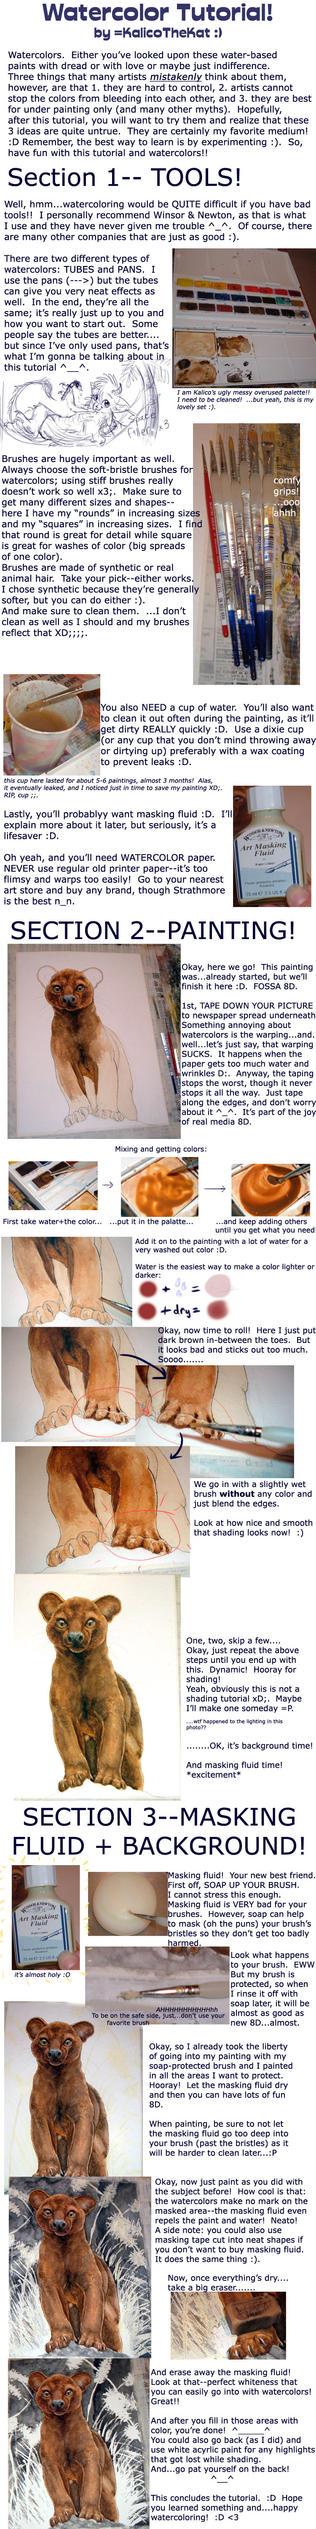 Watercolor Tutorial by kalicothekat